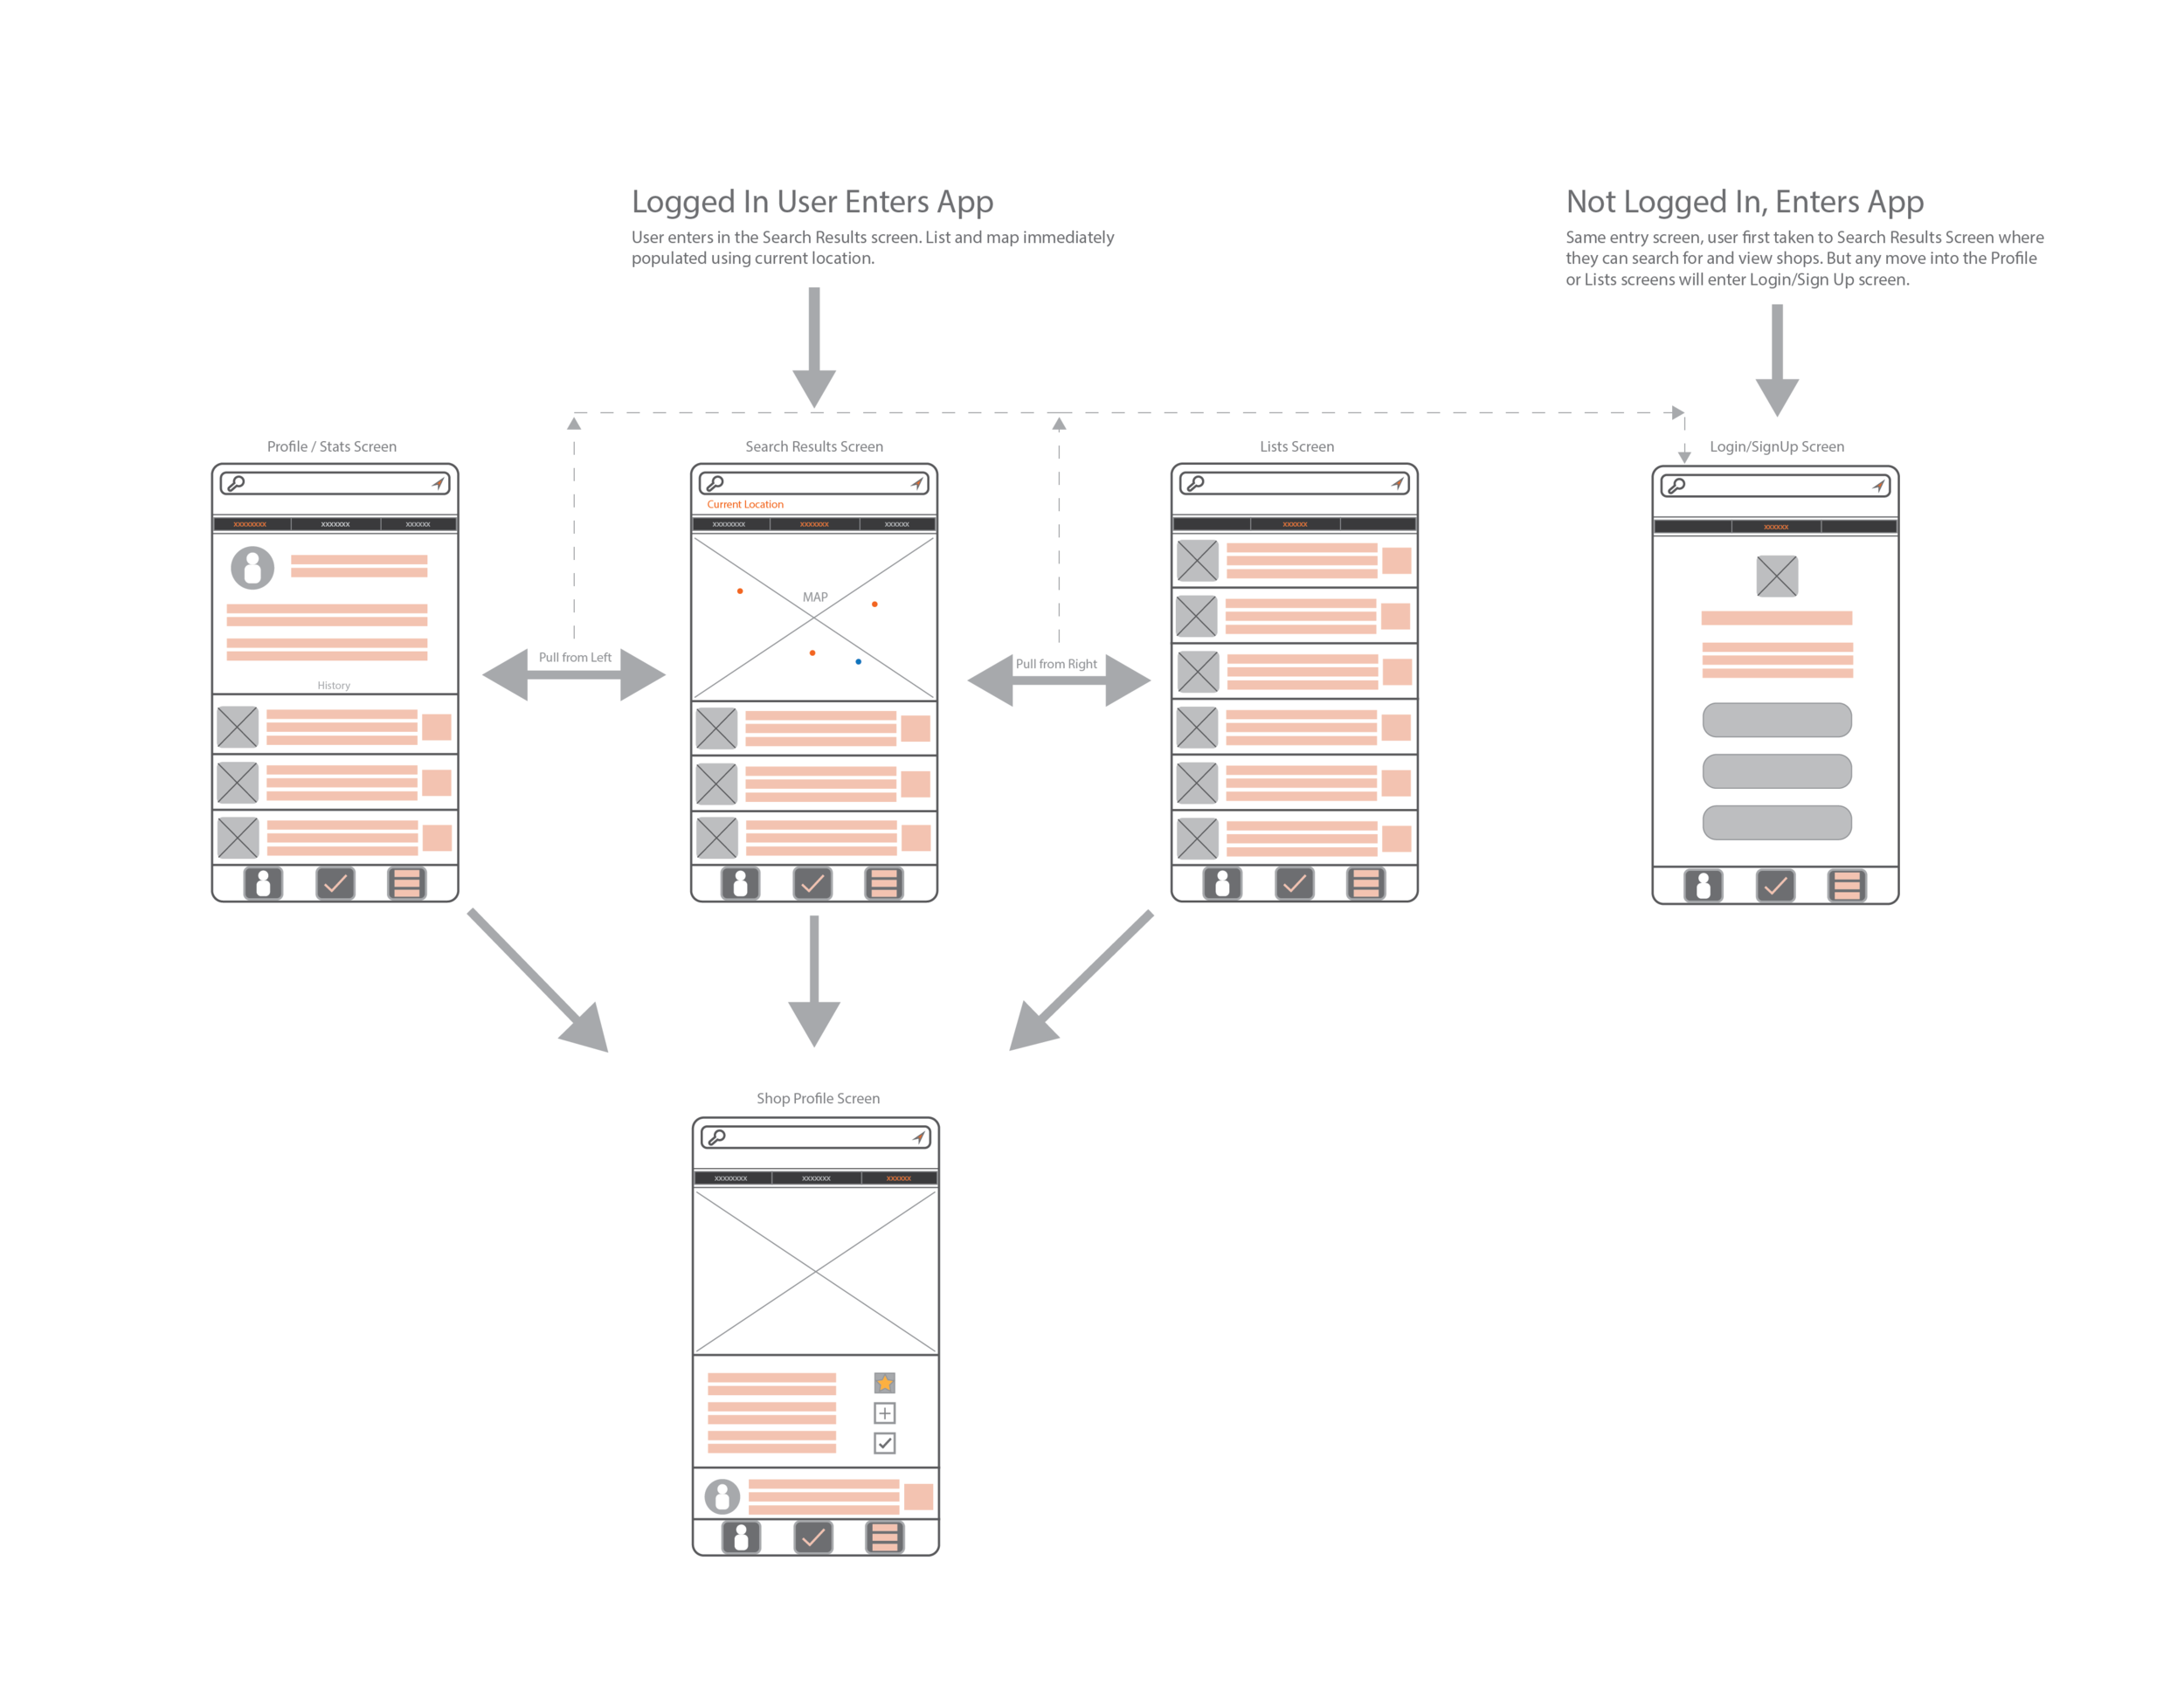 I worked through the user flows with low resolution wireframes before moving to higher resolution designs and prototypes.